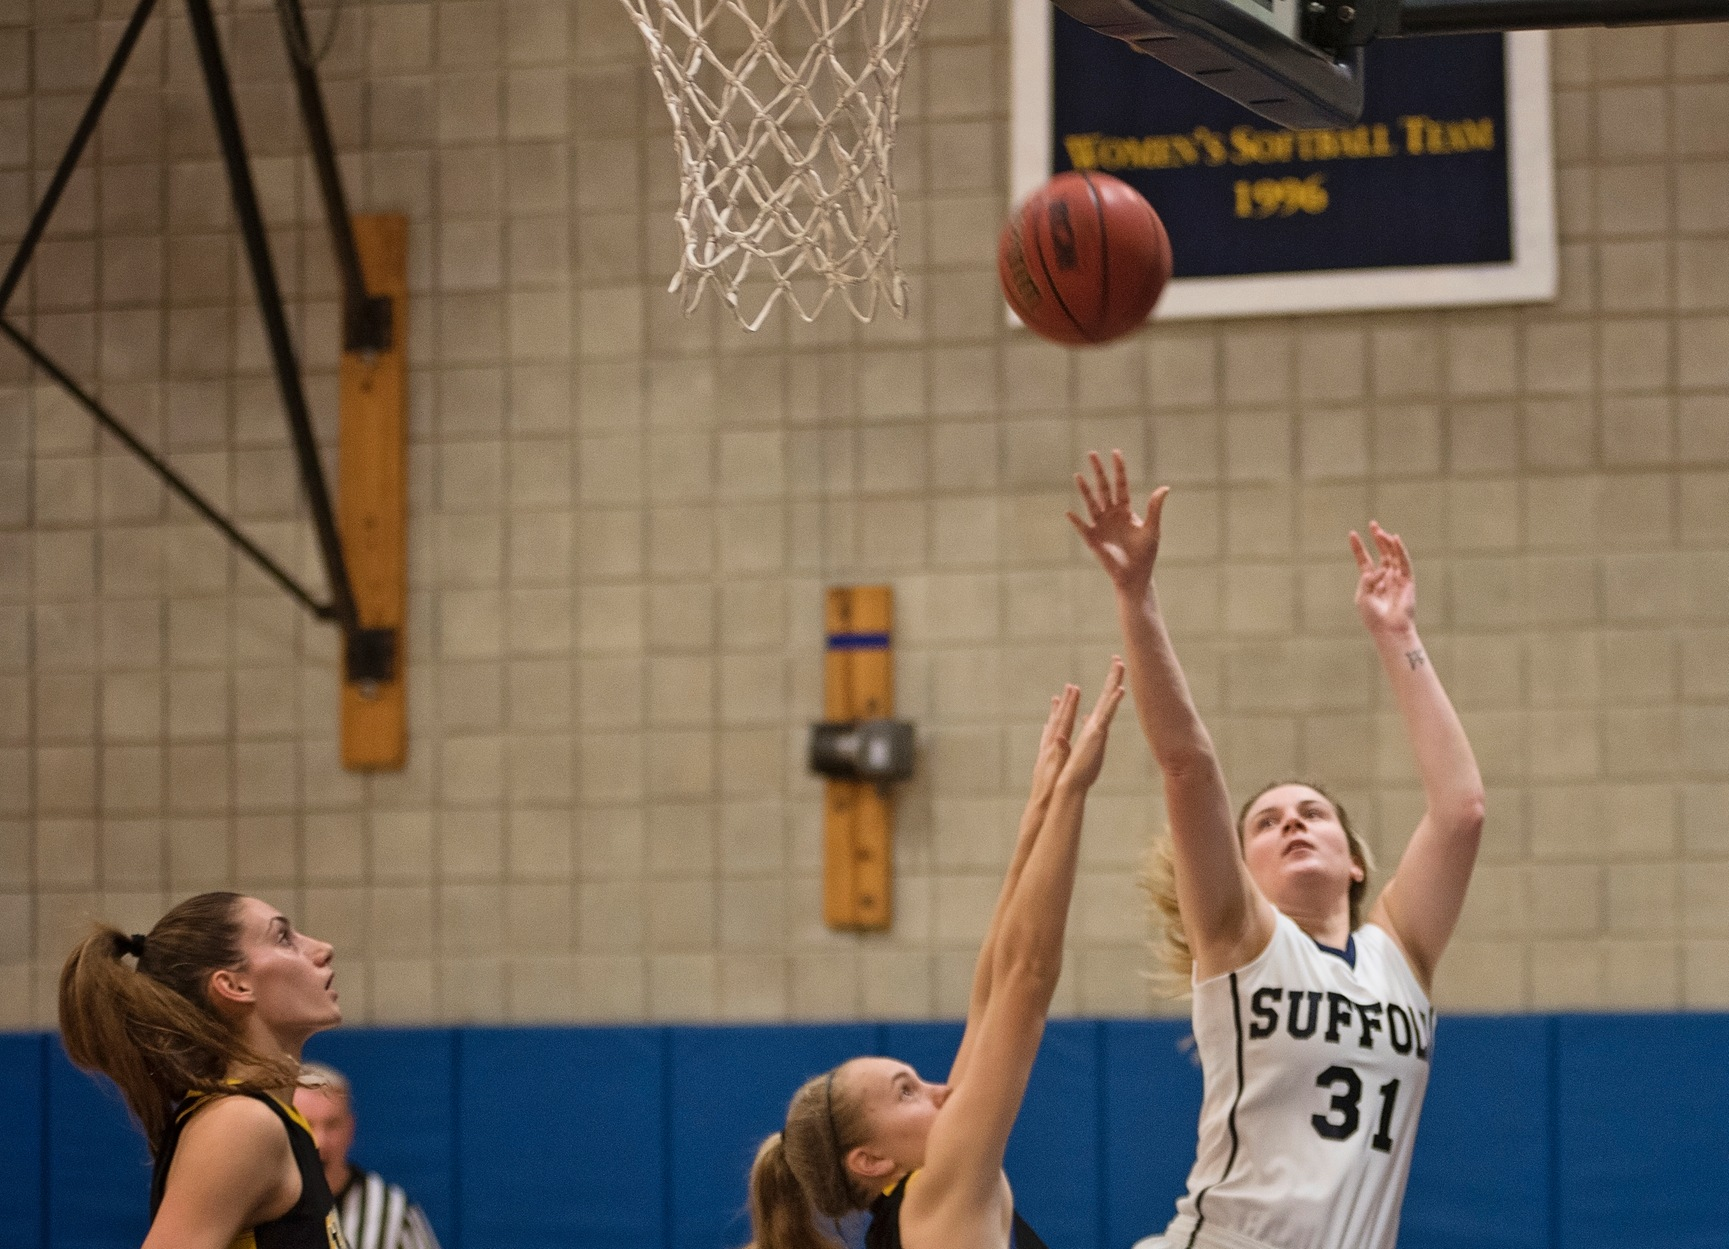 Saturday Showdown Features Women's Basketball at St. Joseph (Conn.)